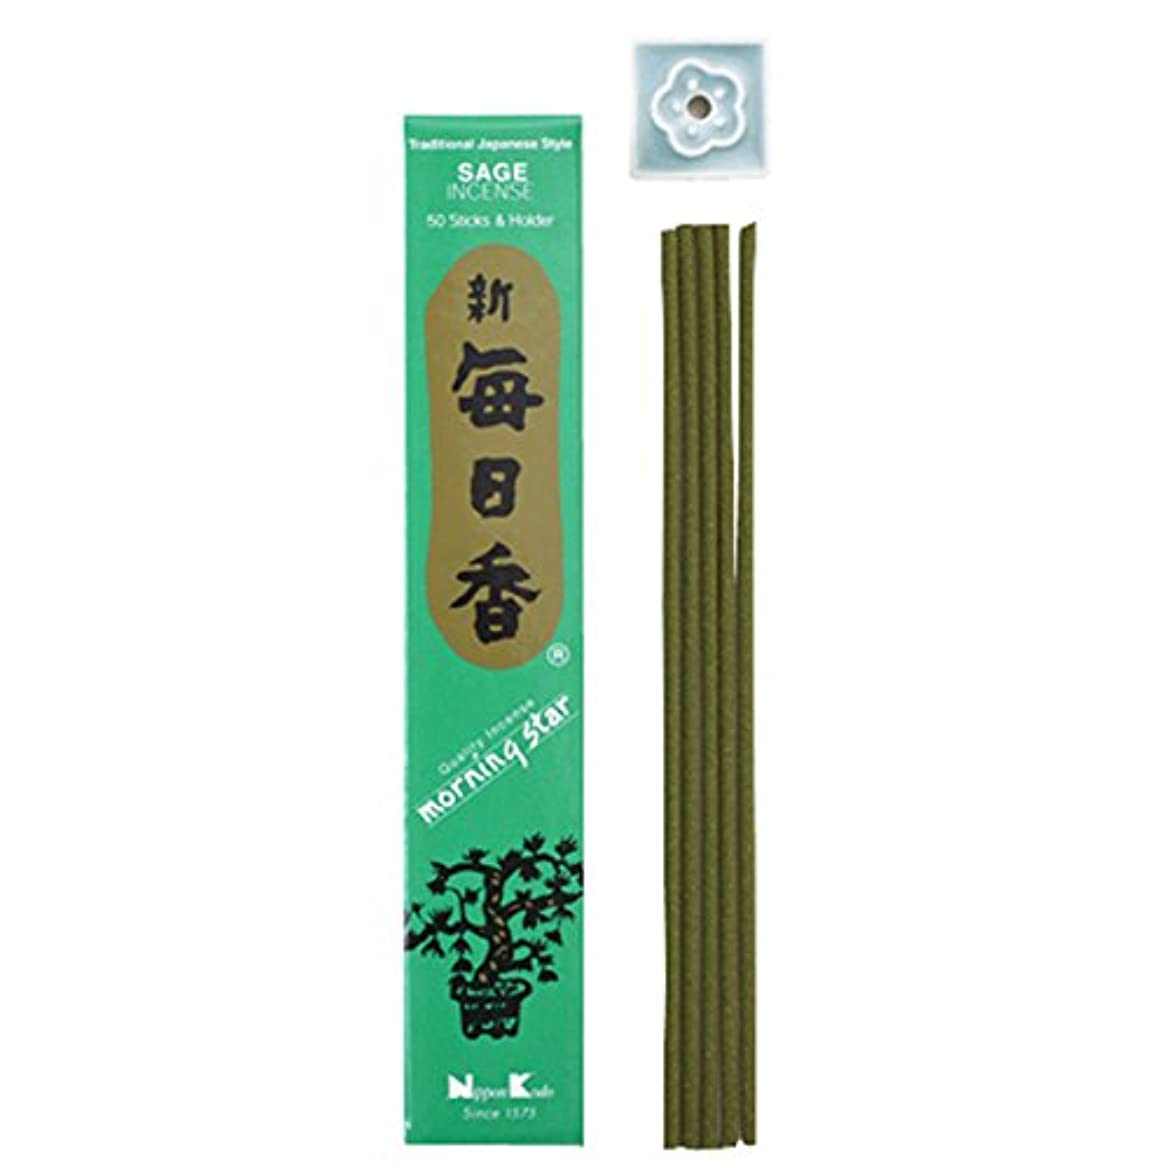 部分的に扱いやすい斧Morning Star Japanese Incense Sticks Sage 50 Sticks &ホルダー'